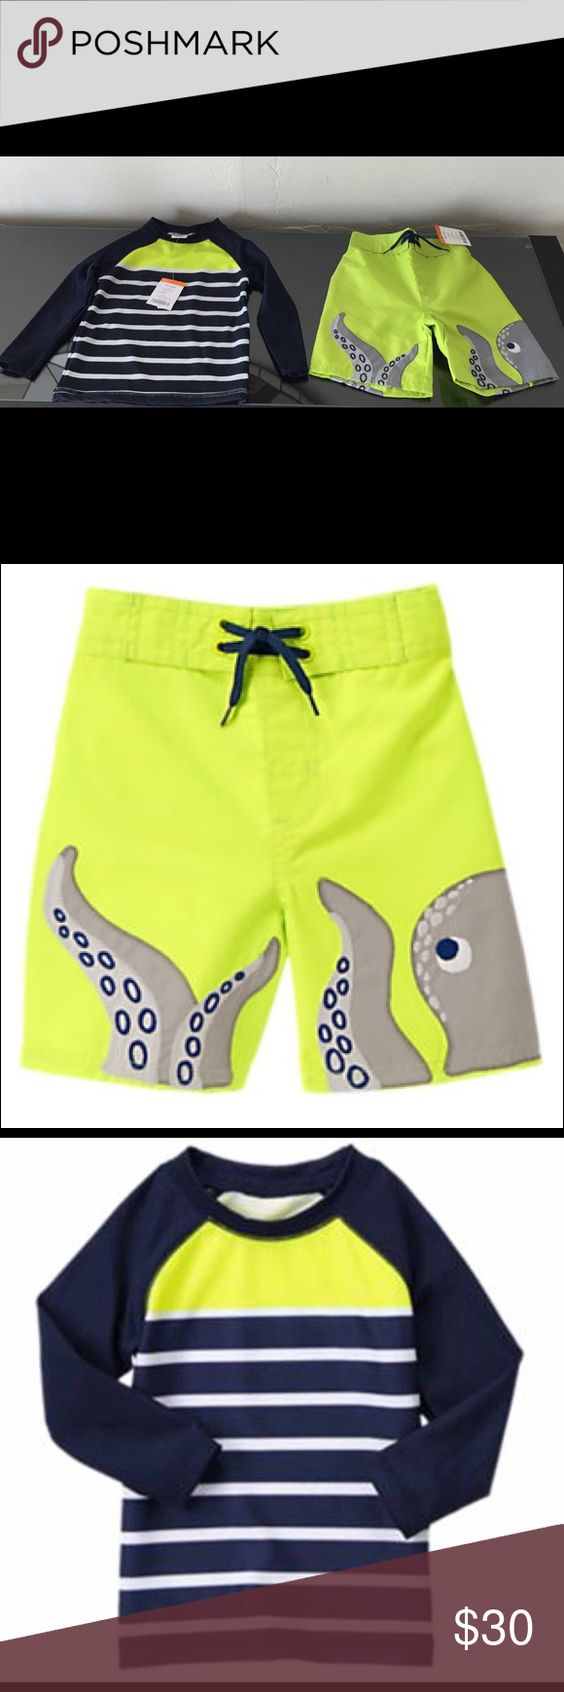 Gymboree Octopus Swim Short Trunks & Rash Guard Absolutely ADORABLE Gymboree SWIM SHOP Octopus Swim Shorts/Trunks with Matching Rash Guard NEW WITH TAGS - ORIGINALLY RETAILED FOR $49.90 ($24.95 a piece)!!  Size: 18-24 Months Colors: Neon Chartreuse, Grey, Navy and White From Gymboree's website: 	•	Shorts: 100% polyester, Rash Guard: 83% polyester/17%spandex tricot 	•	UPF 50+ 	•	Features screen printed octopus with embroidered edges 	•	Elasticized waist with mock drawstring 	•	Mesh lining…